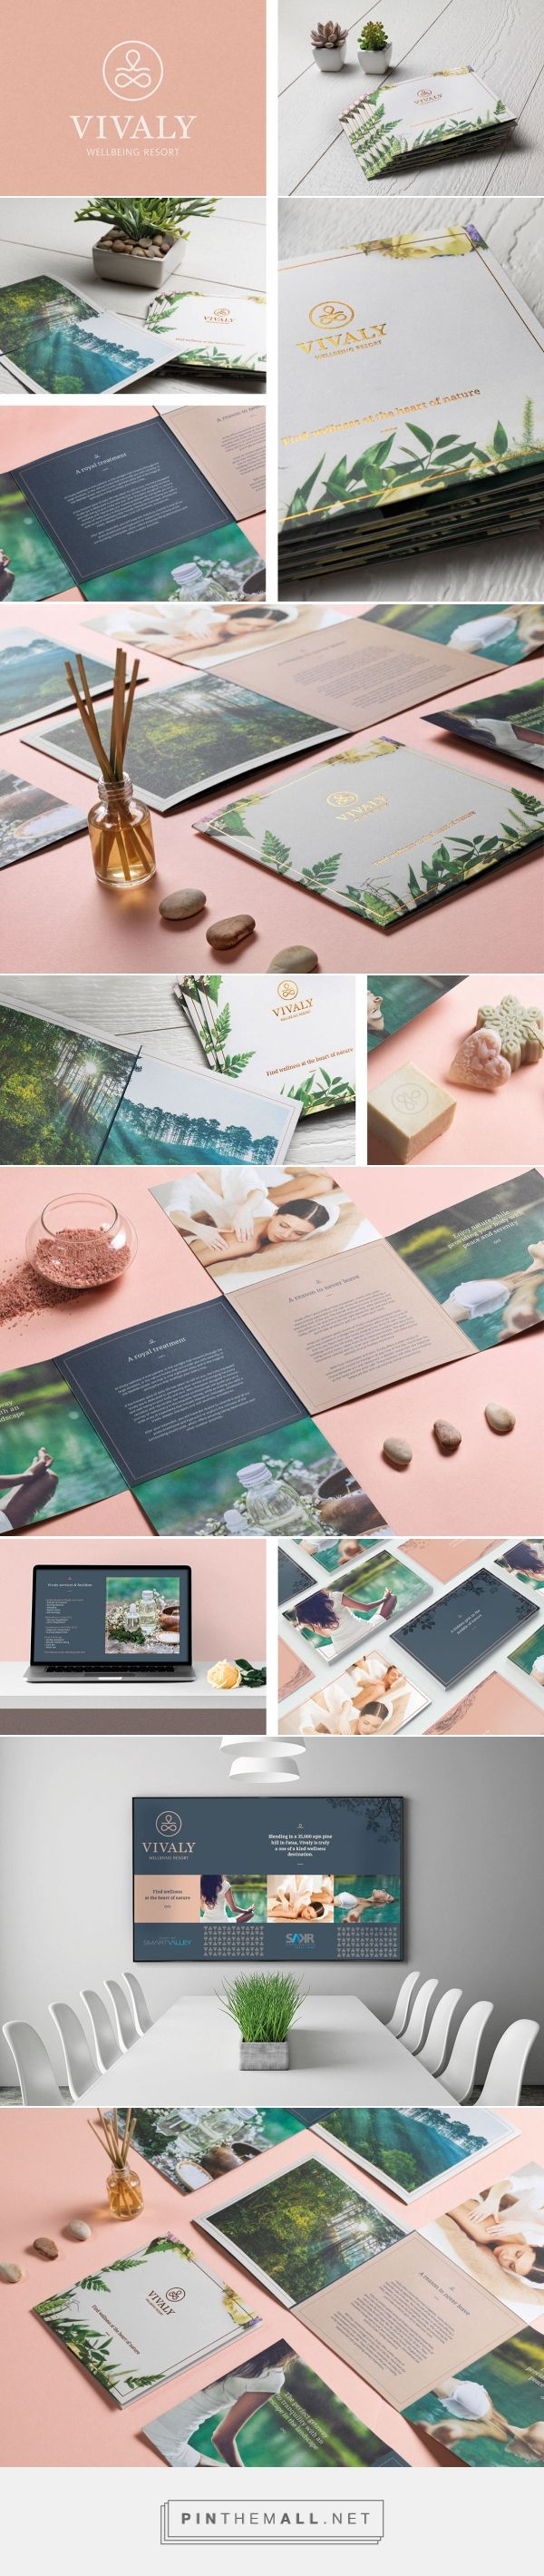 Vivaly Wellbeing Resort on Behance - created via https://pinthemall.net